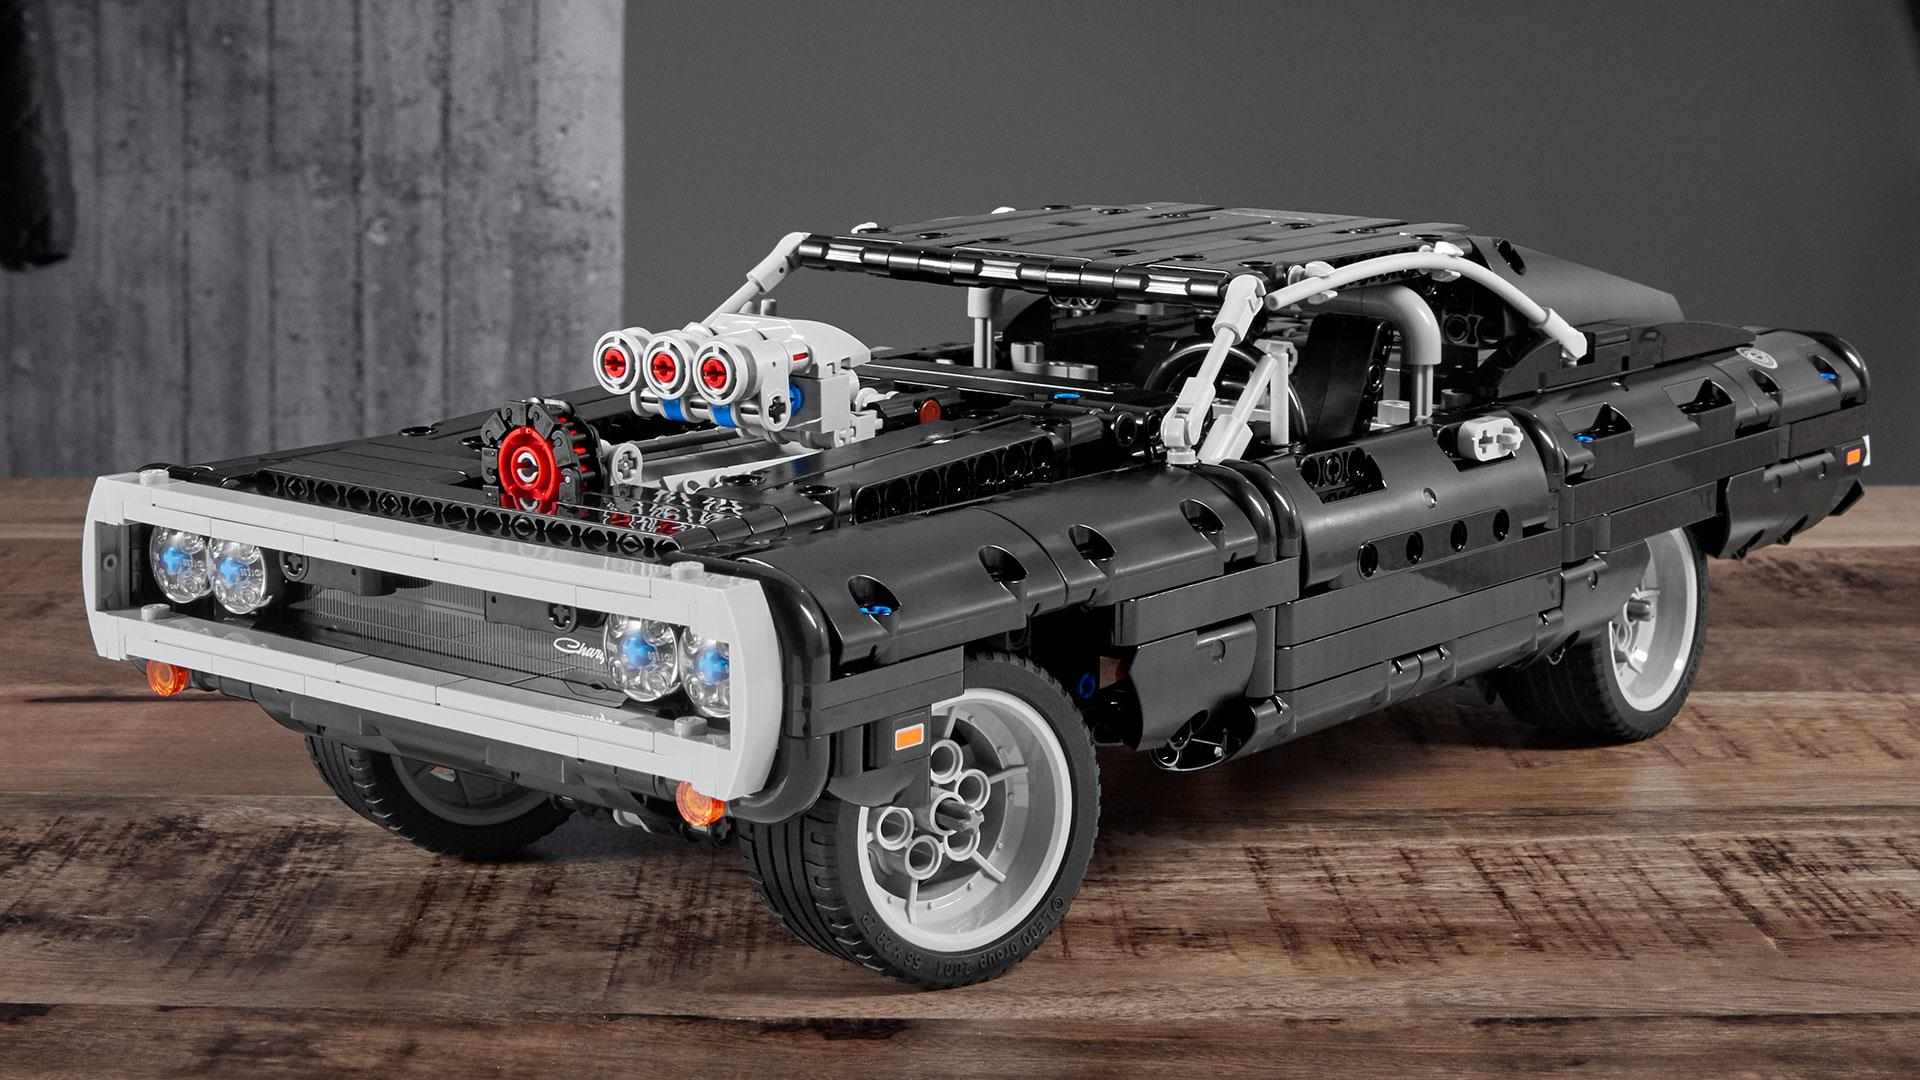 Lego Dodge Charger uit The Fast and the Furious